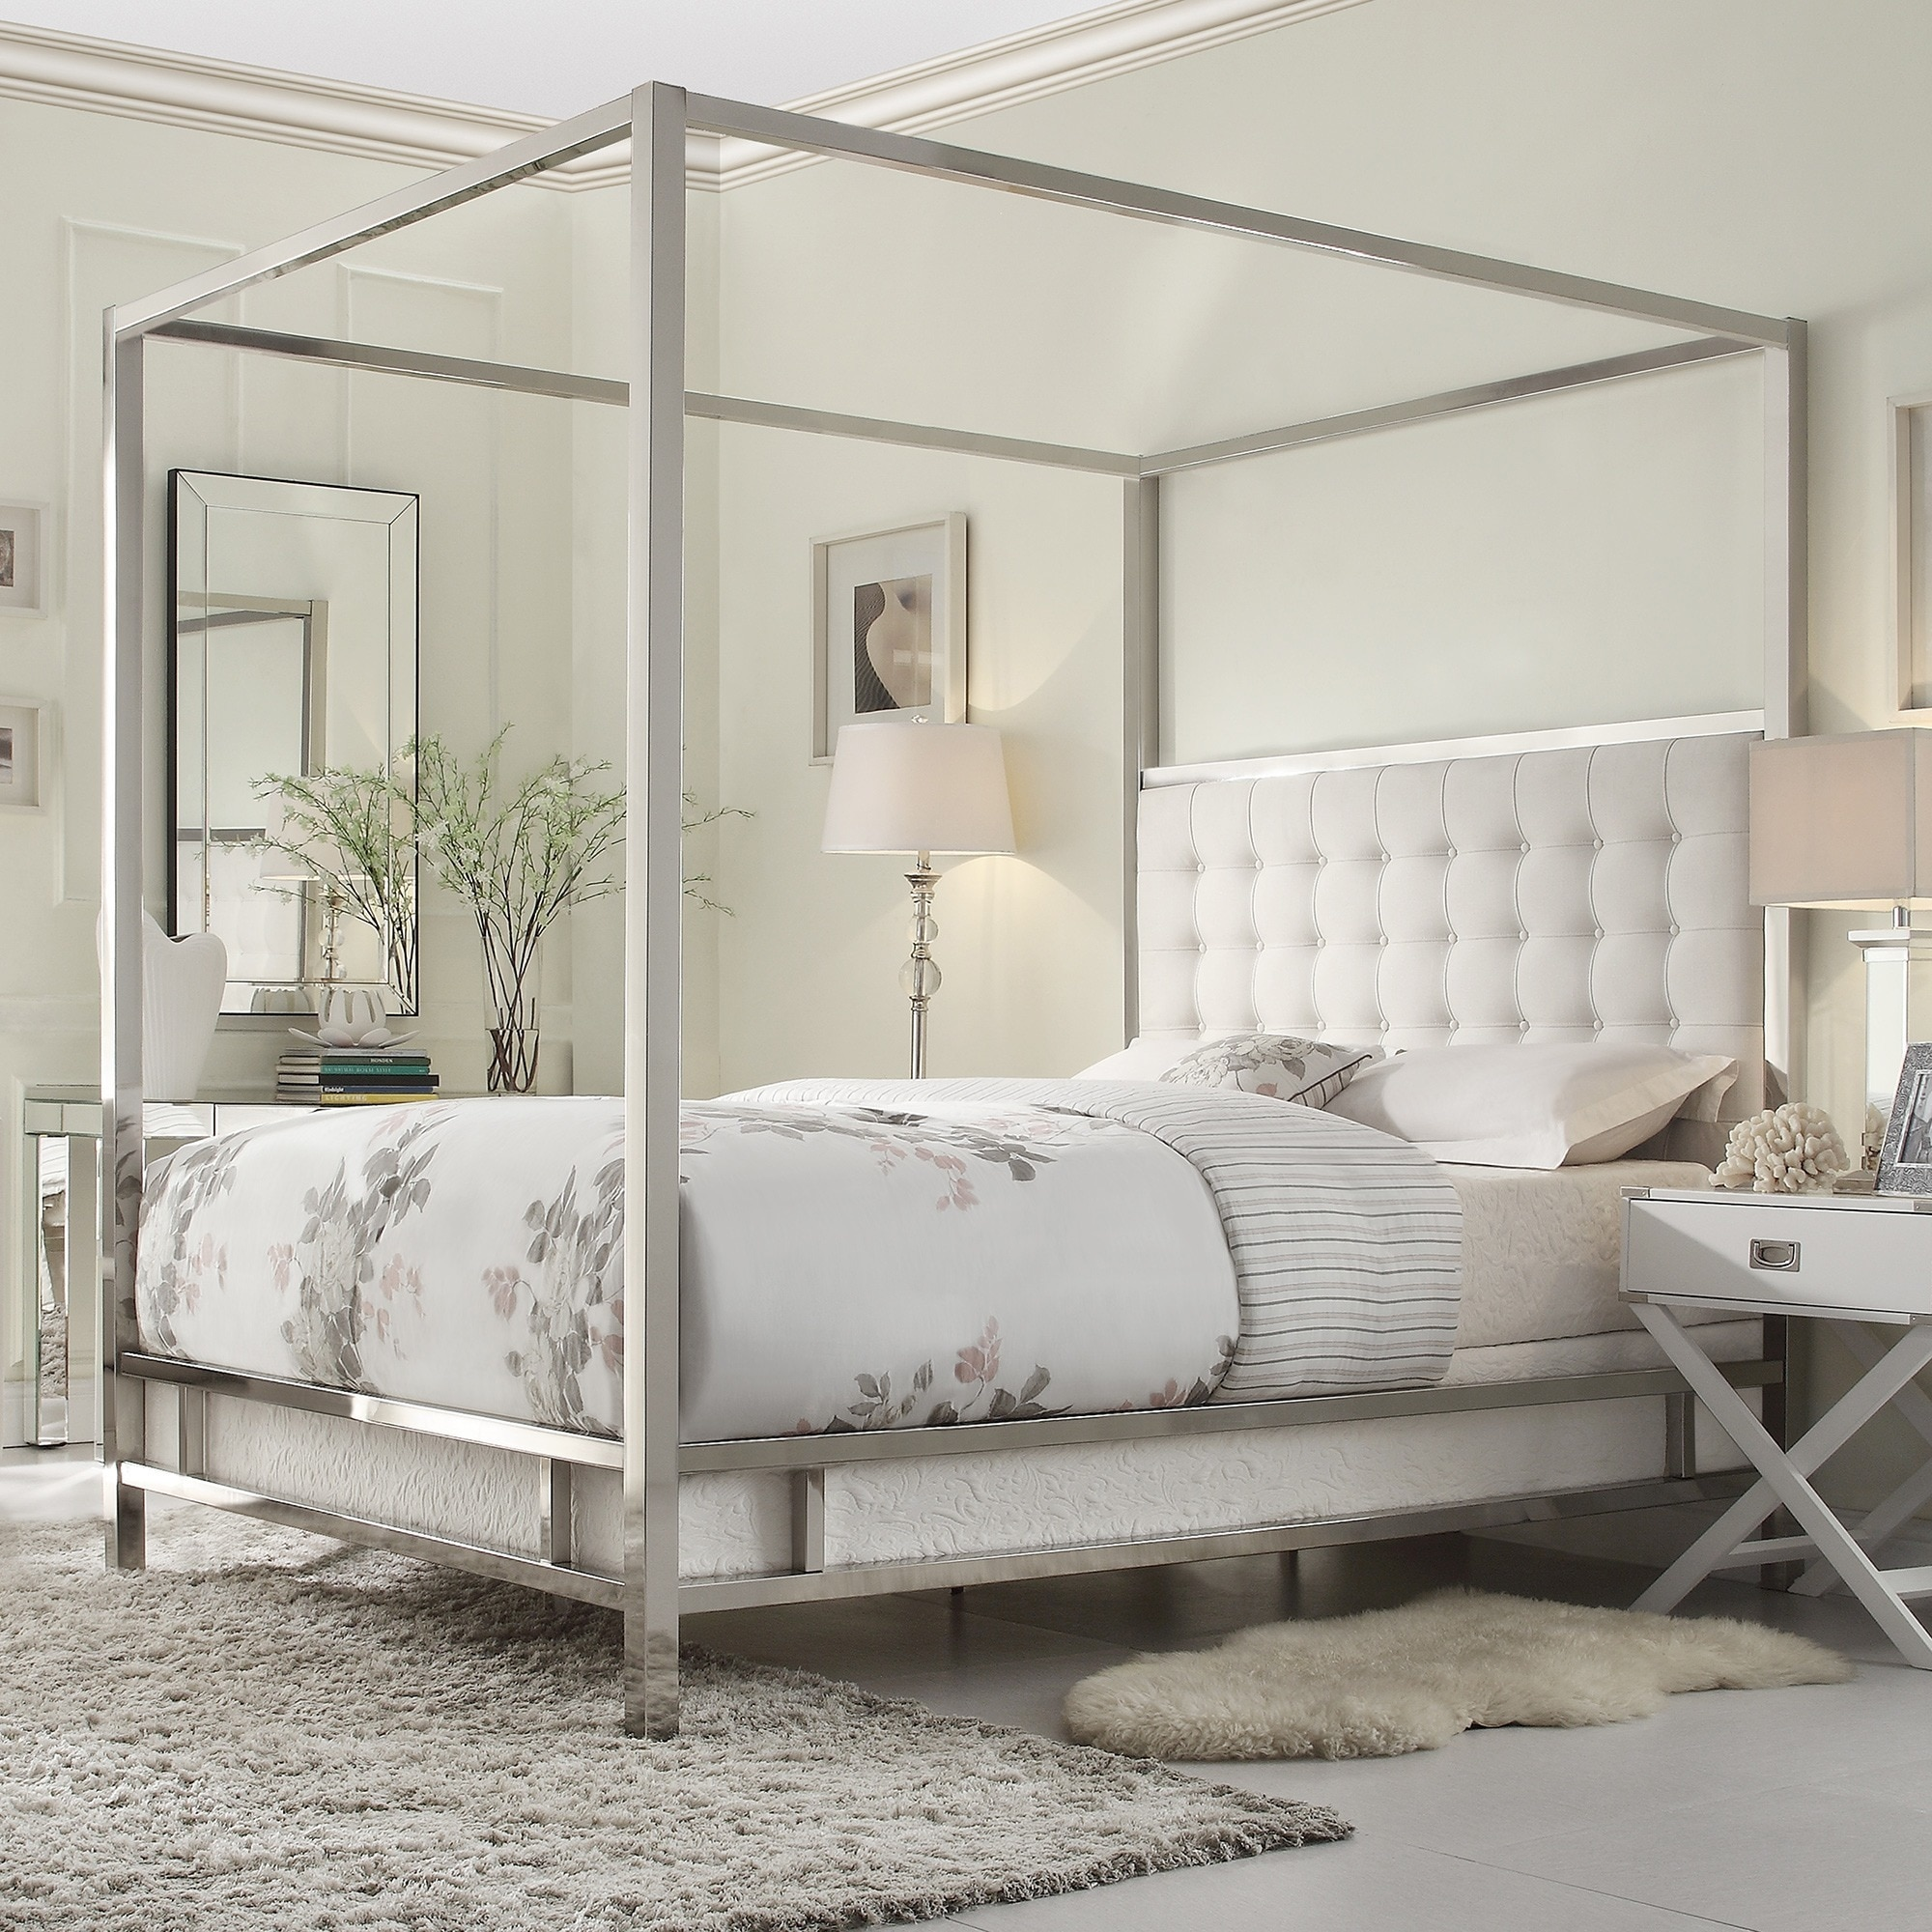 2a717594f3b1 Shop Solivita King-size Canopy Chrome Metal Poster Bed by iNSPIRE Q Bold -  On Sale - Free Shipping Today - Overstock - 9378478